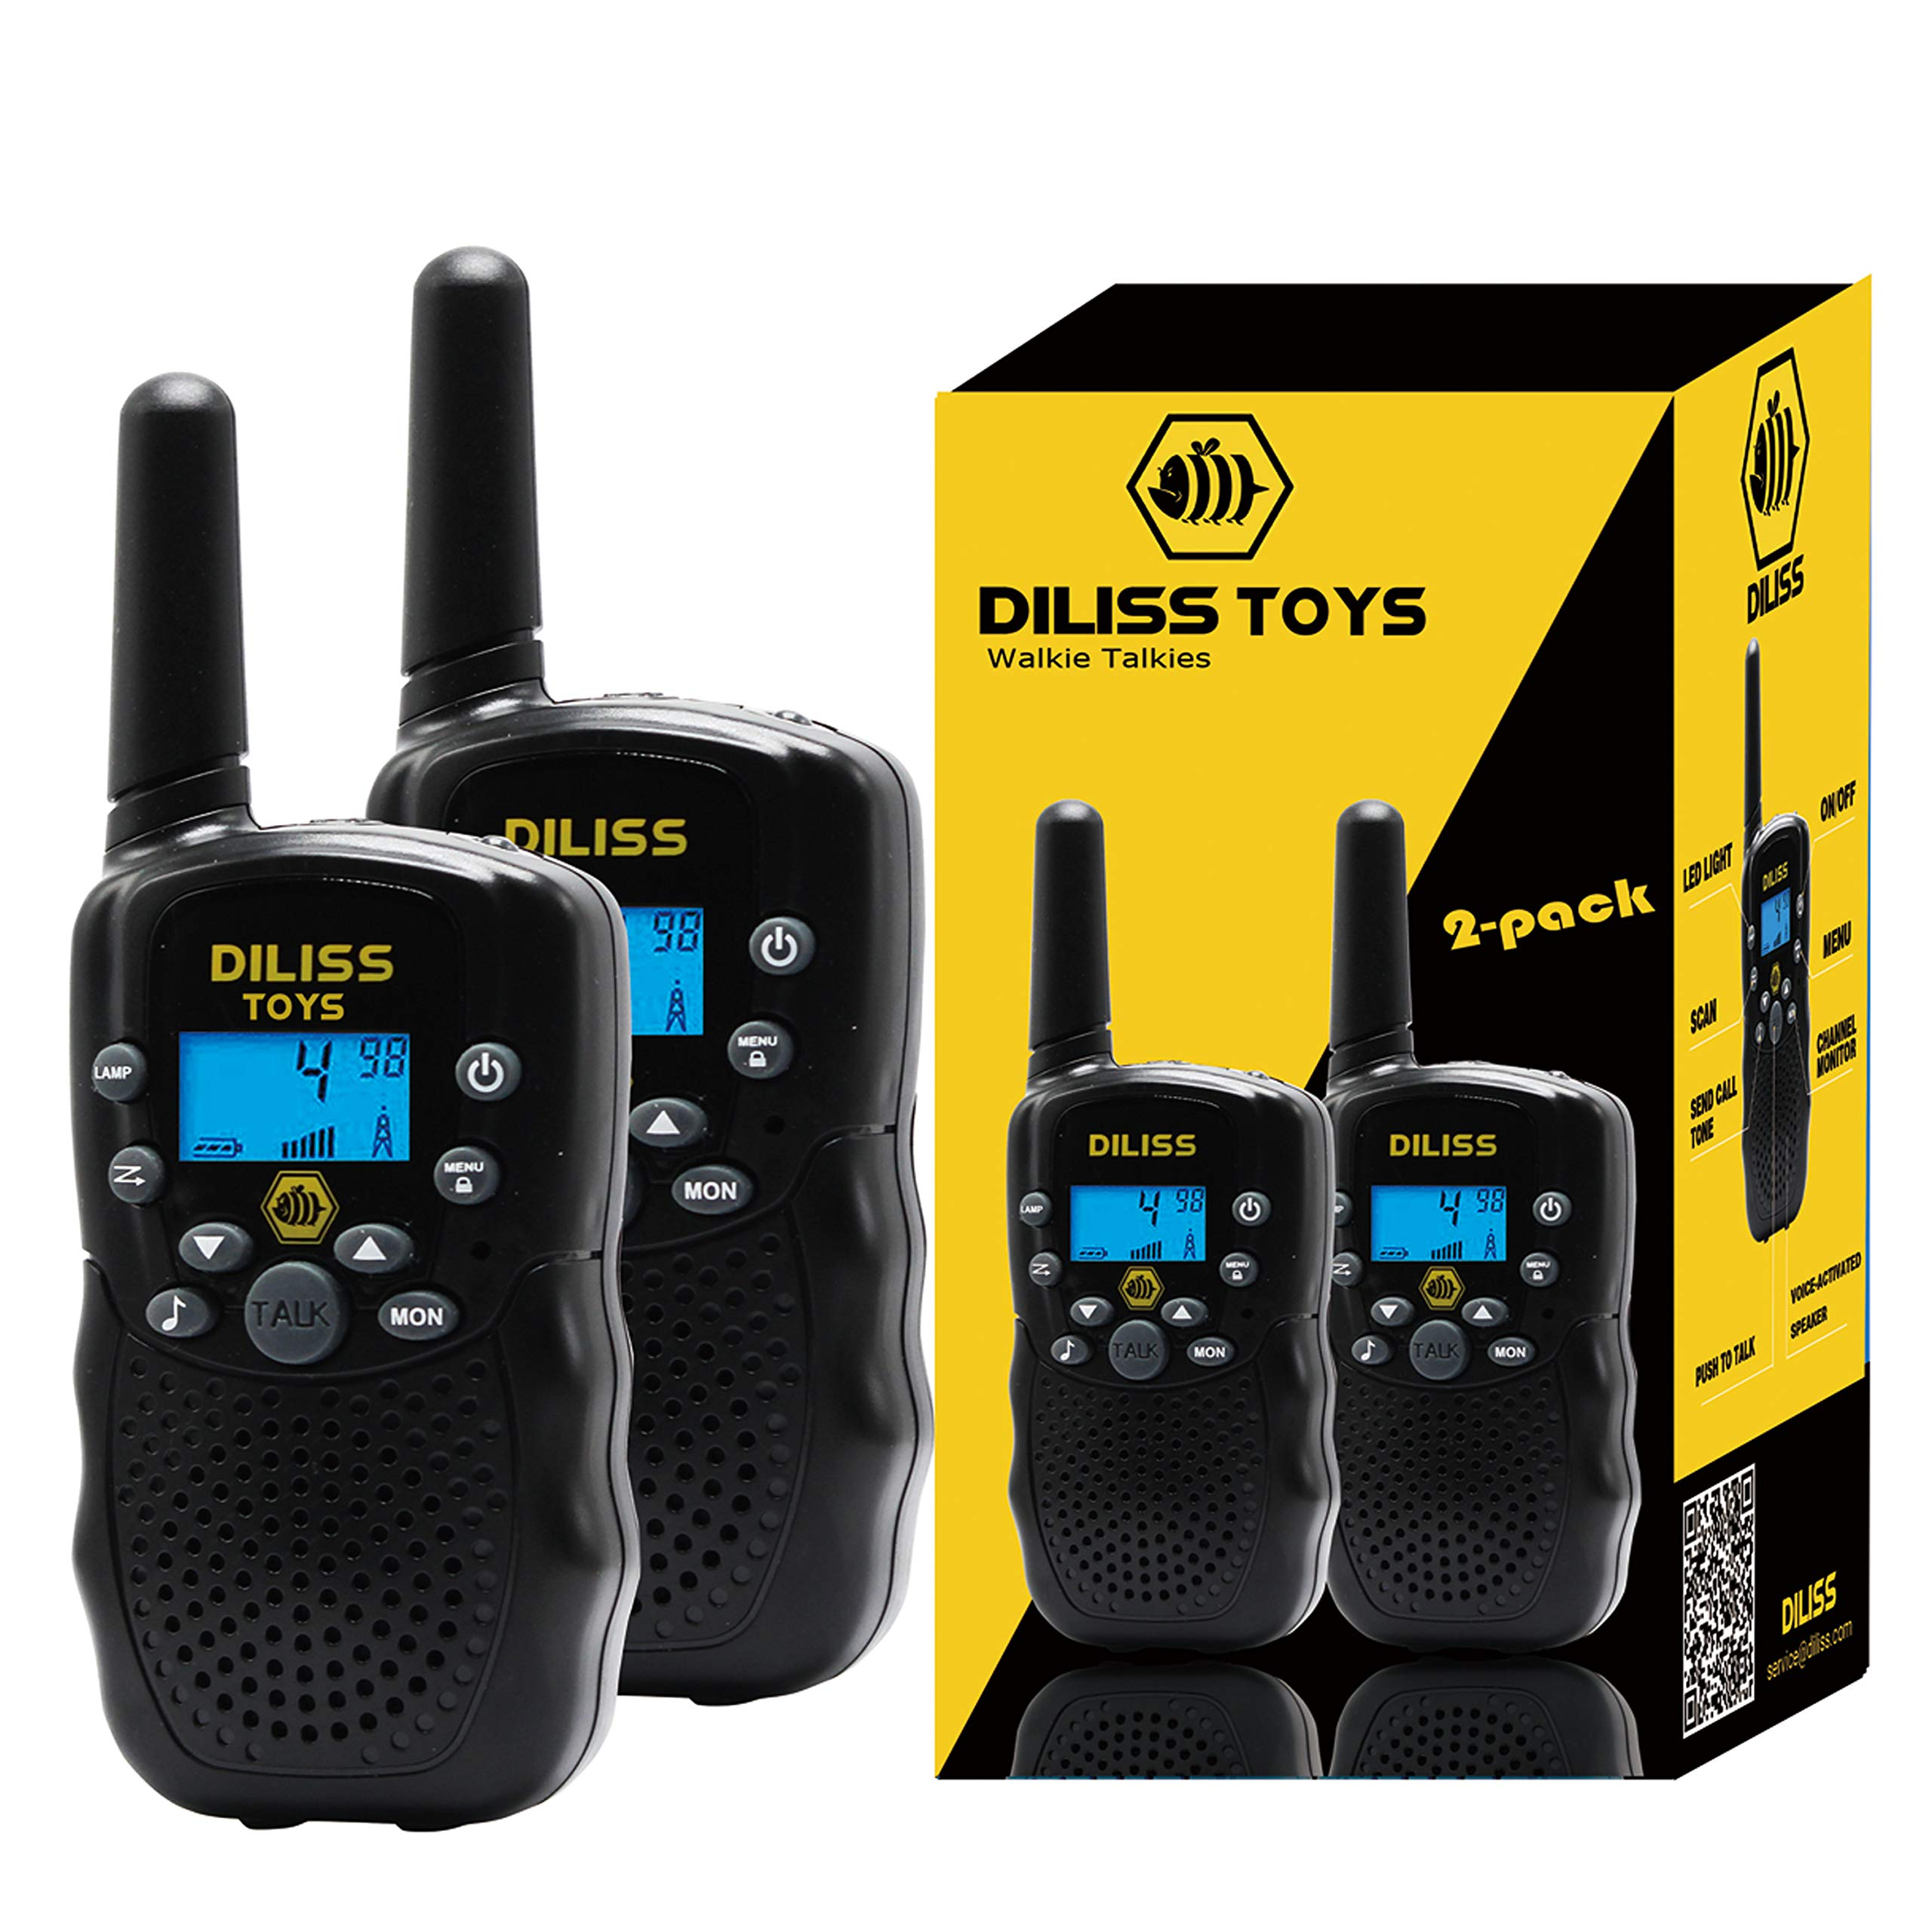 DilissToys Walkie Talkies for Kids by DilissToys (Image #1)